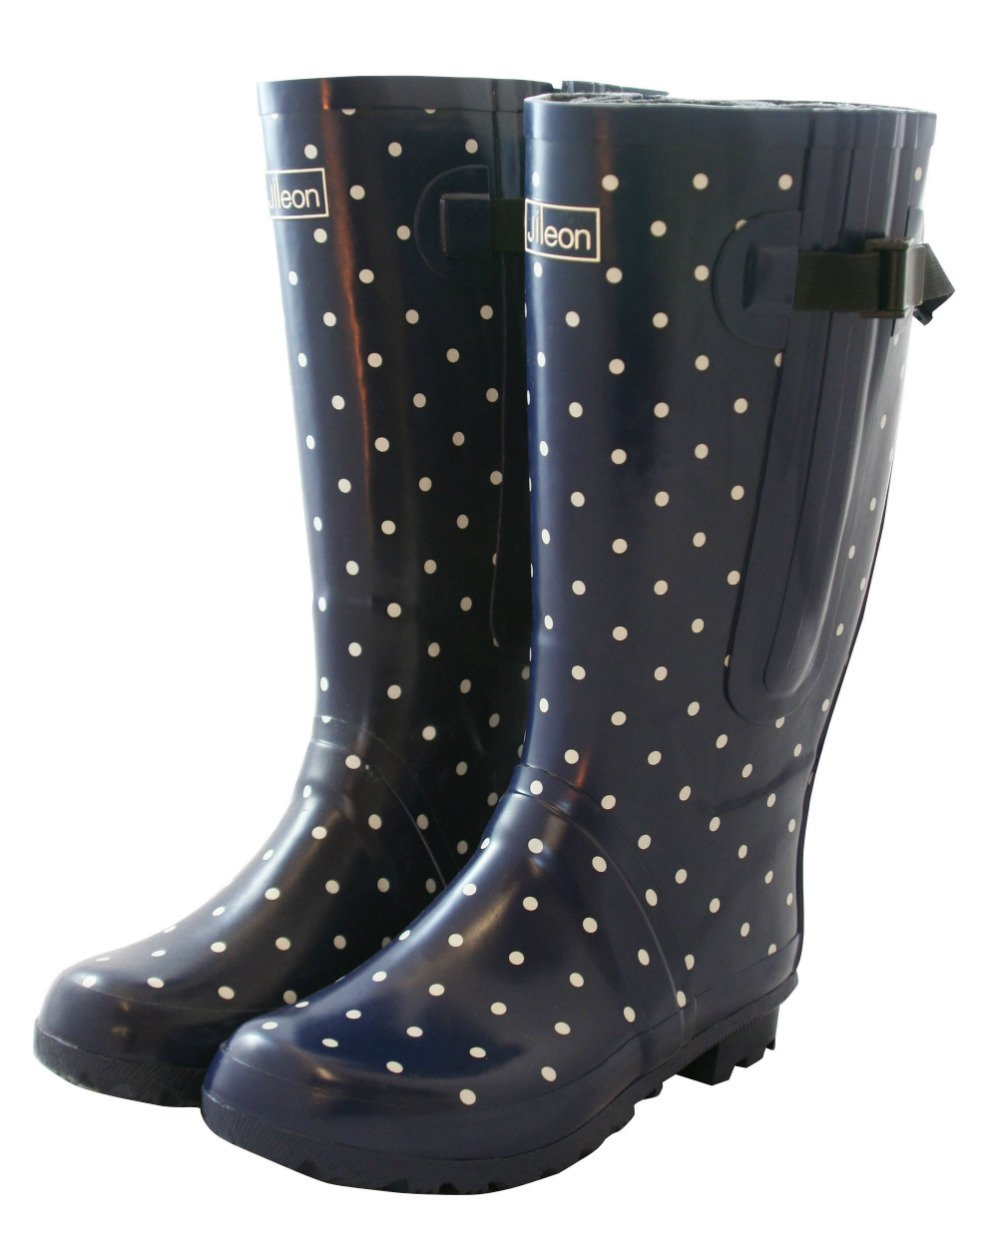 Jileon Extra Wide Calf Rubber Rain Boots for Women-Widest Fit Boots in The US-up to 21 inch Calves-Wide in The Foot and Ankle B012D69III 11 E (Extra Wide) US|Navy With White Polka Dots